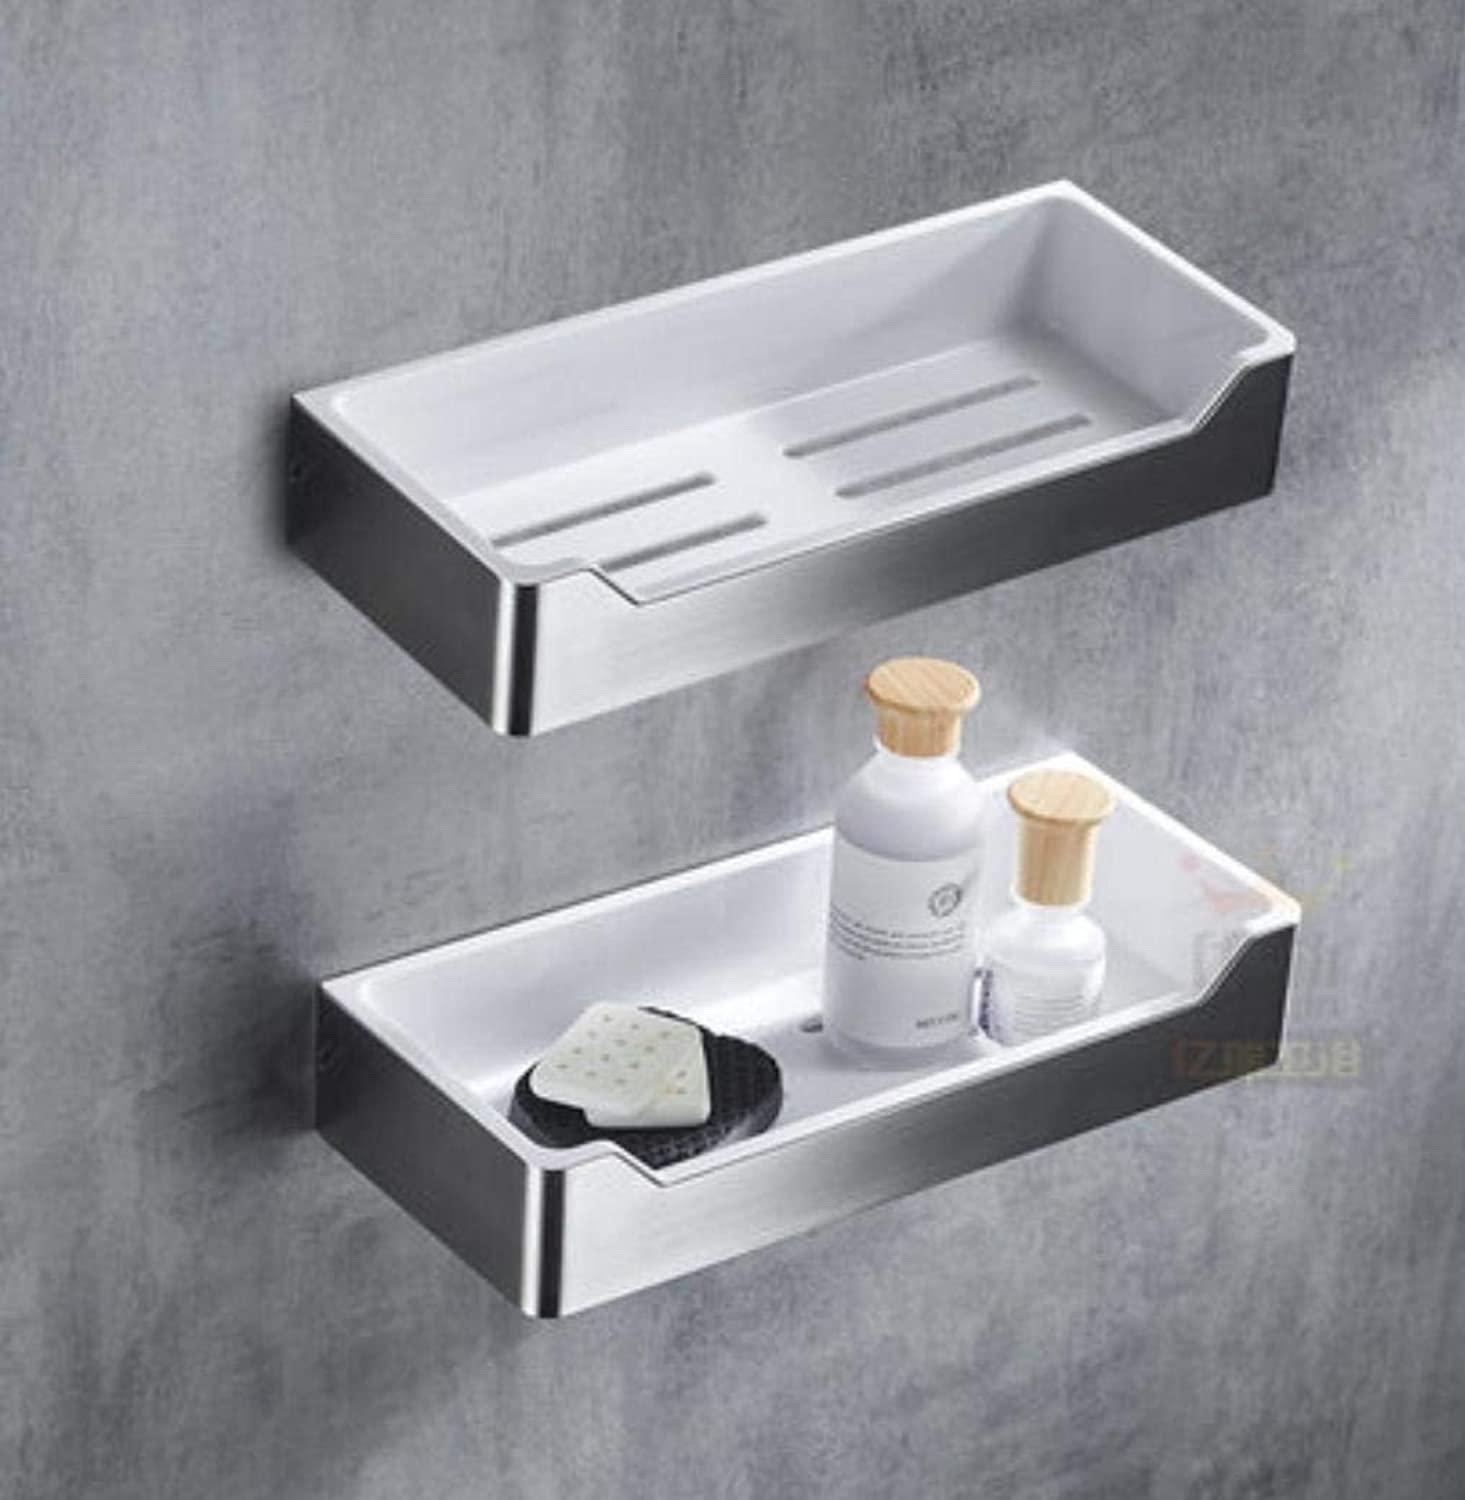 EQEQ 304 Stainless Steel Storage Basket Rectangular Bathroom Shelving to The Wall Corner Stand Assemblies, 2